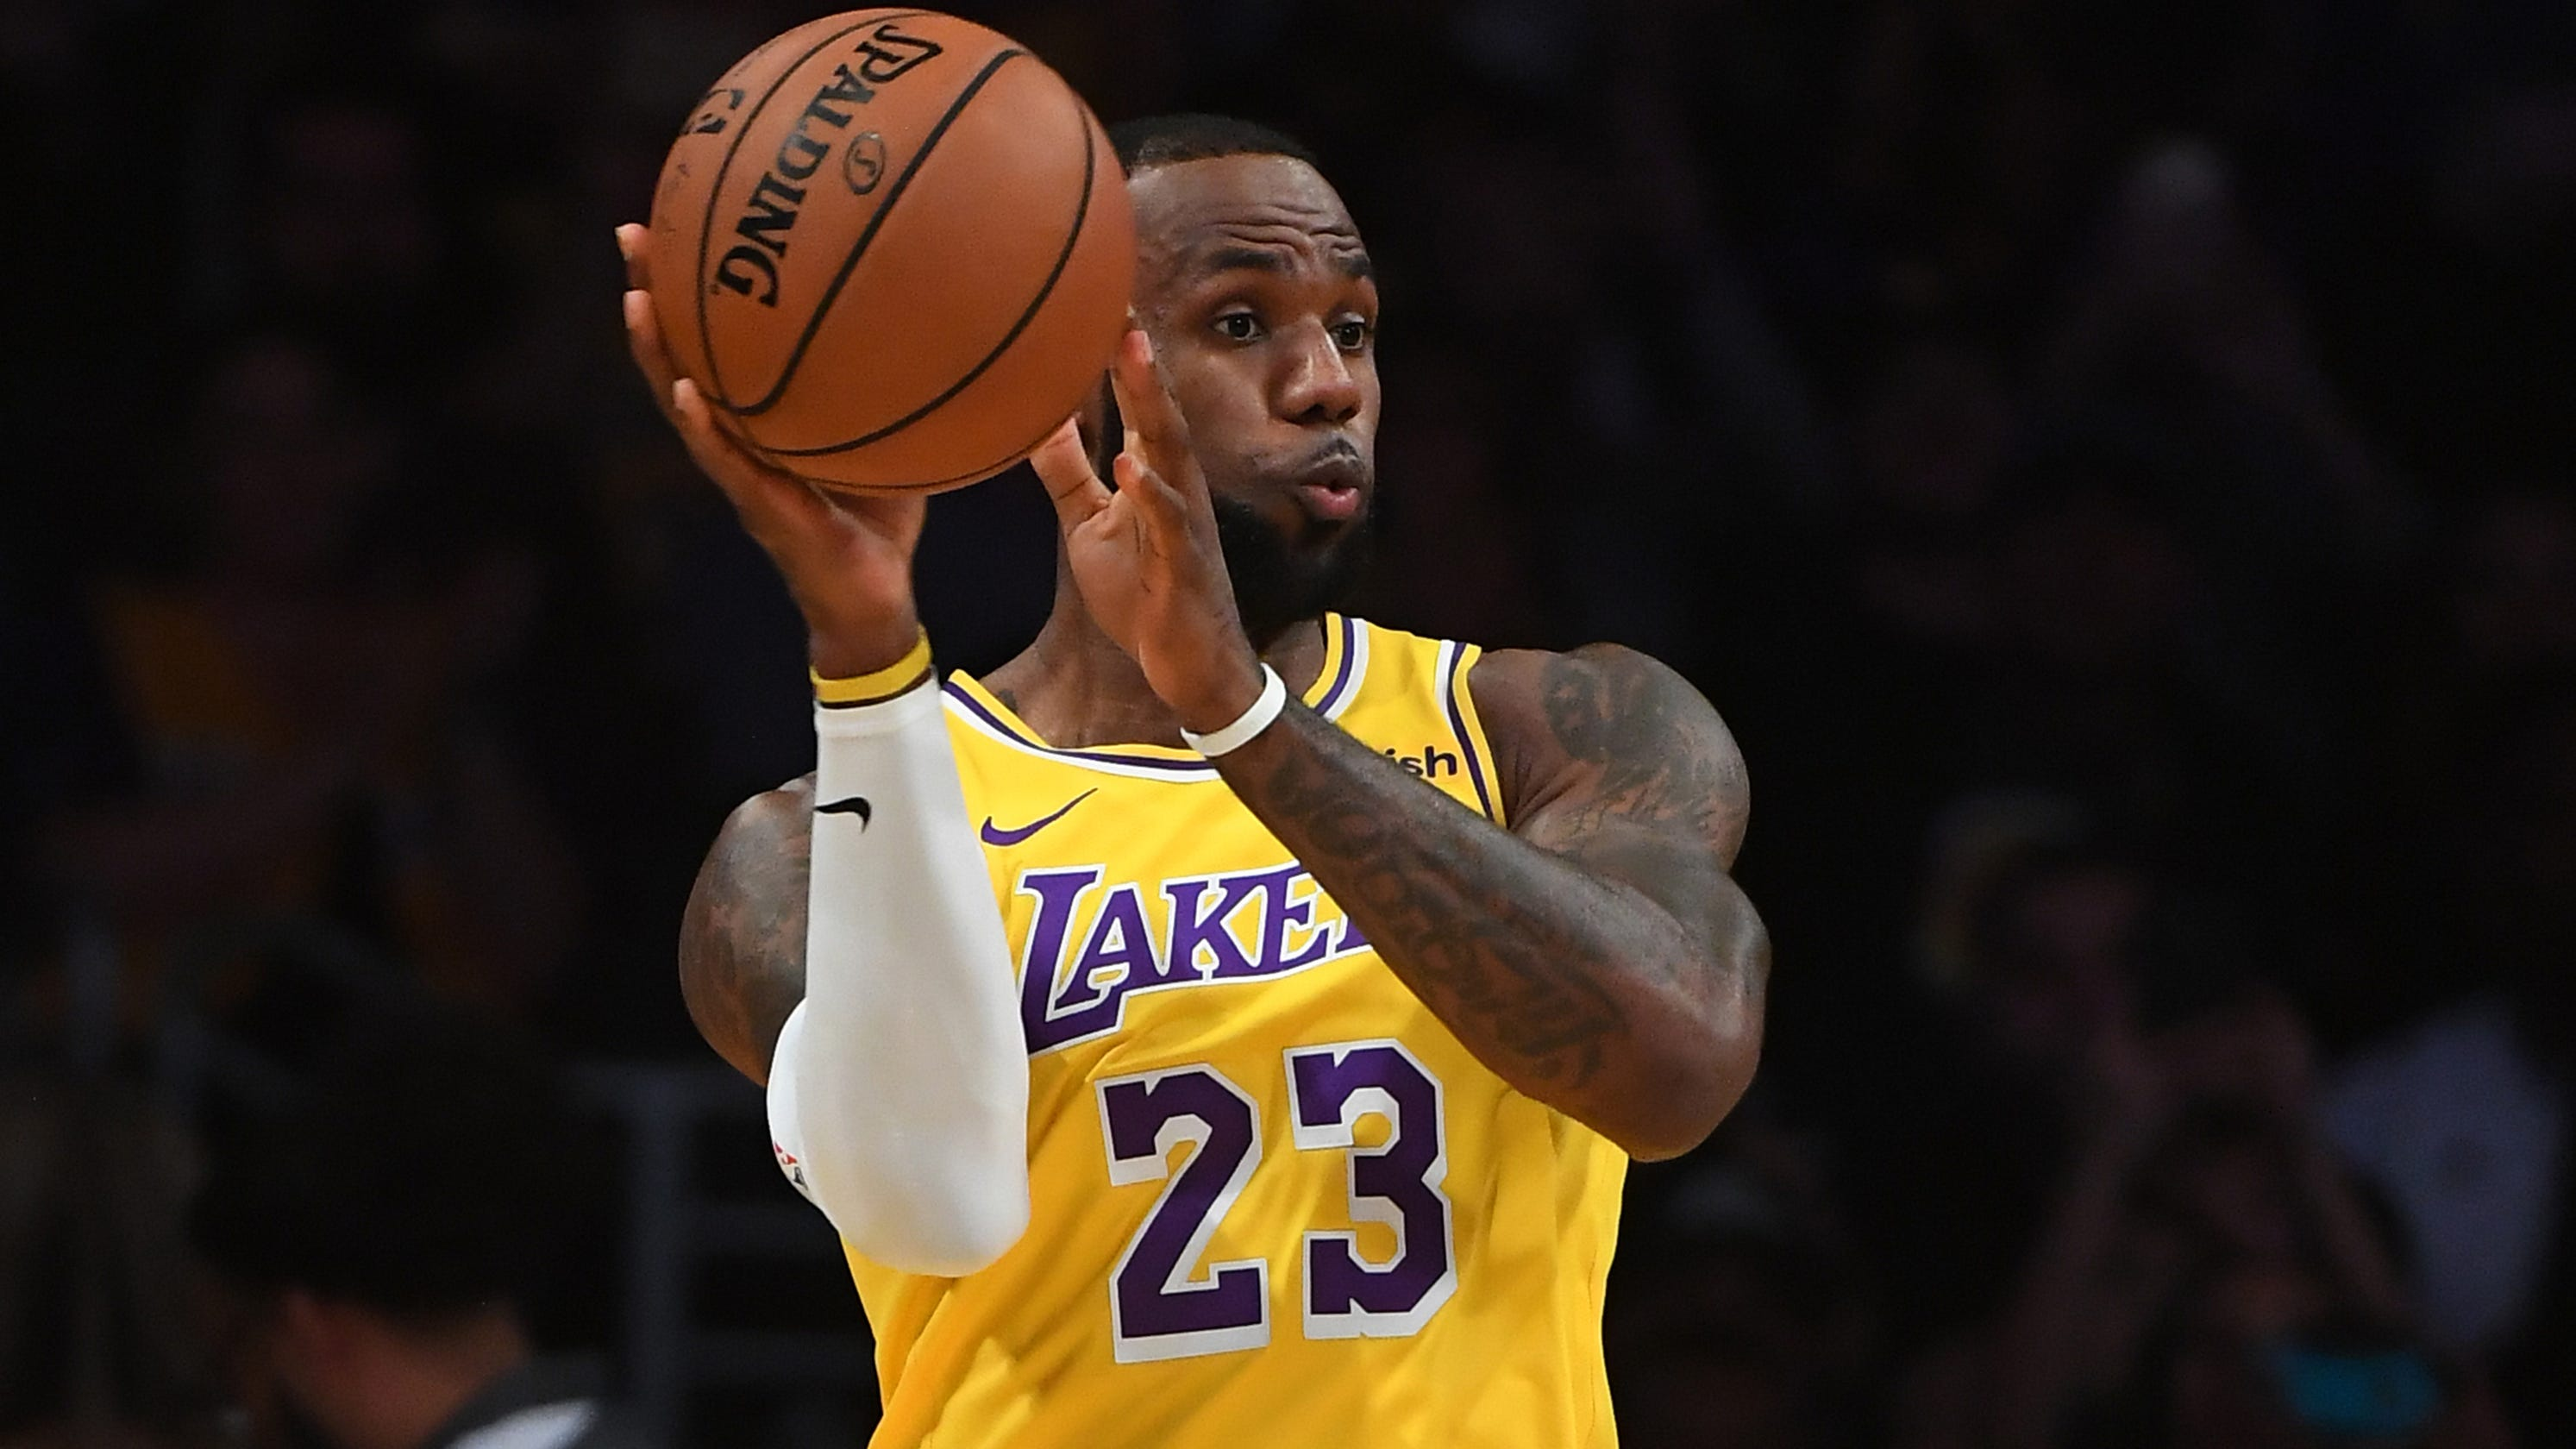 7a6a94b588b LeBron James  Sellout crowd welcomes Laker home in debut at Staples